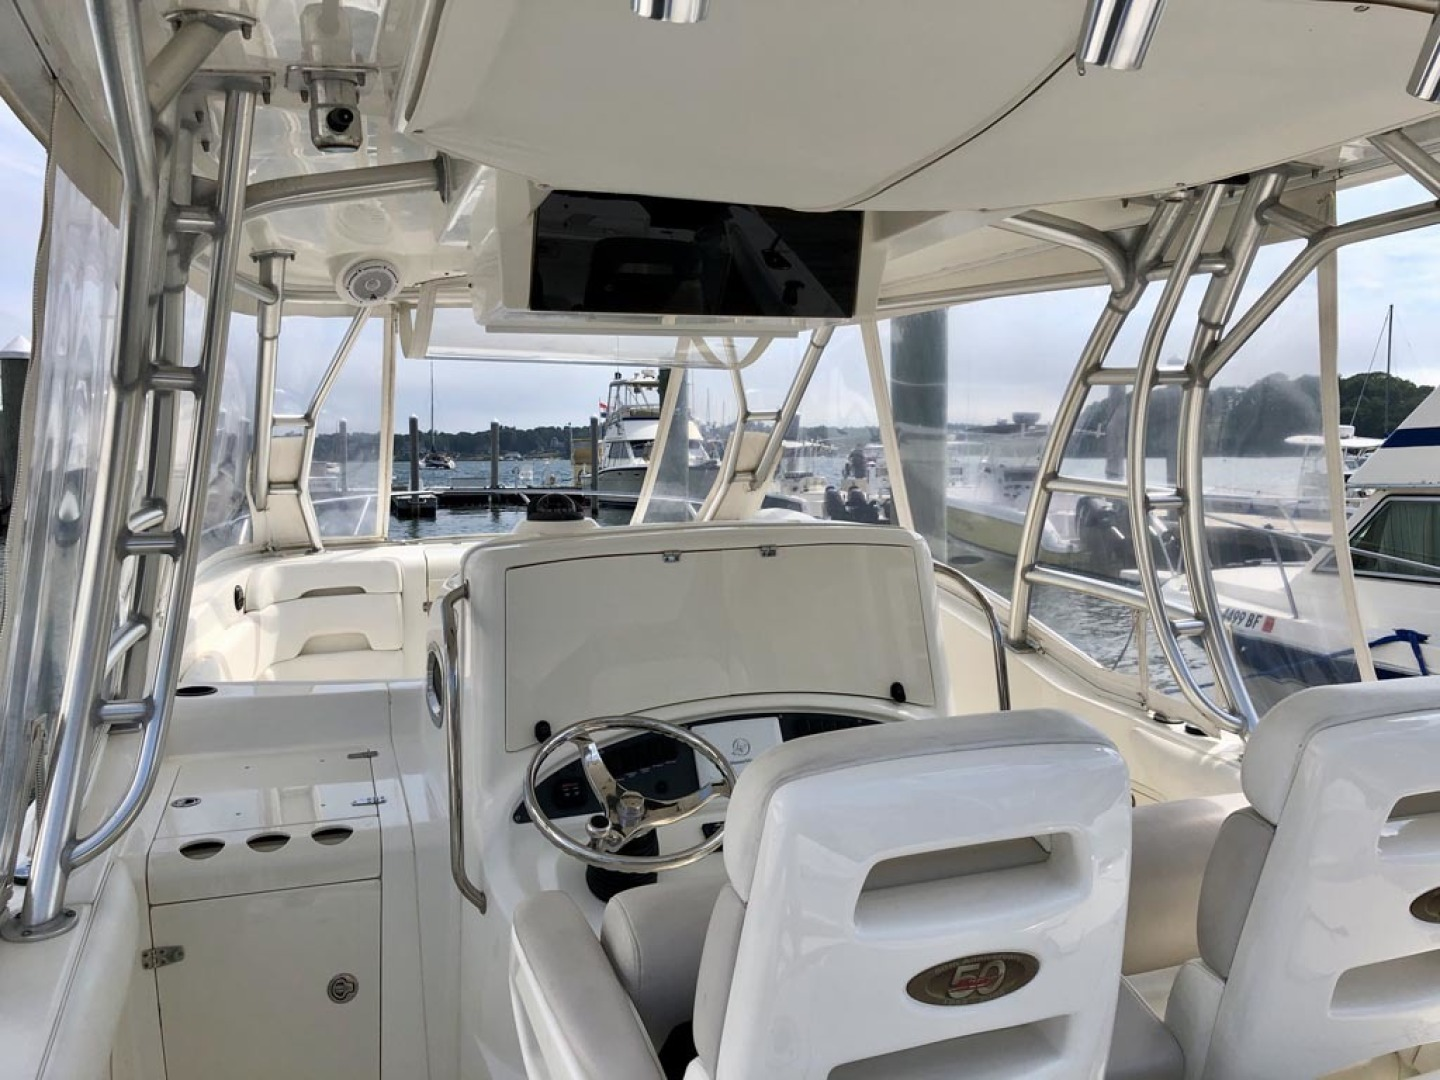 Boston Whaler-320 Outrage Cuddy Cabin 2008 -Onset-Massachusetts-United States-1447540 | Thumbnail